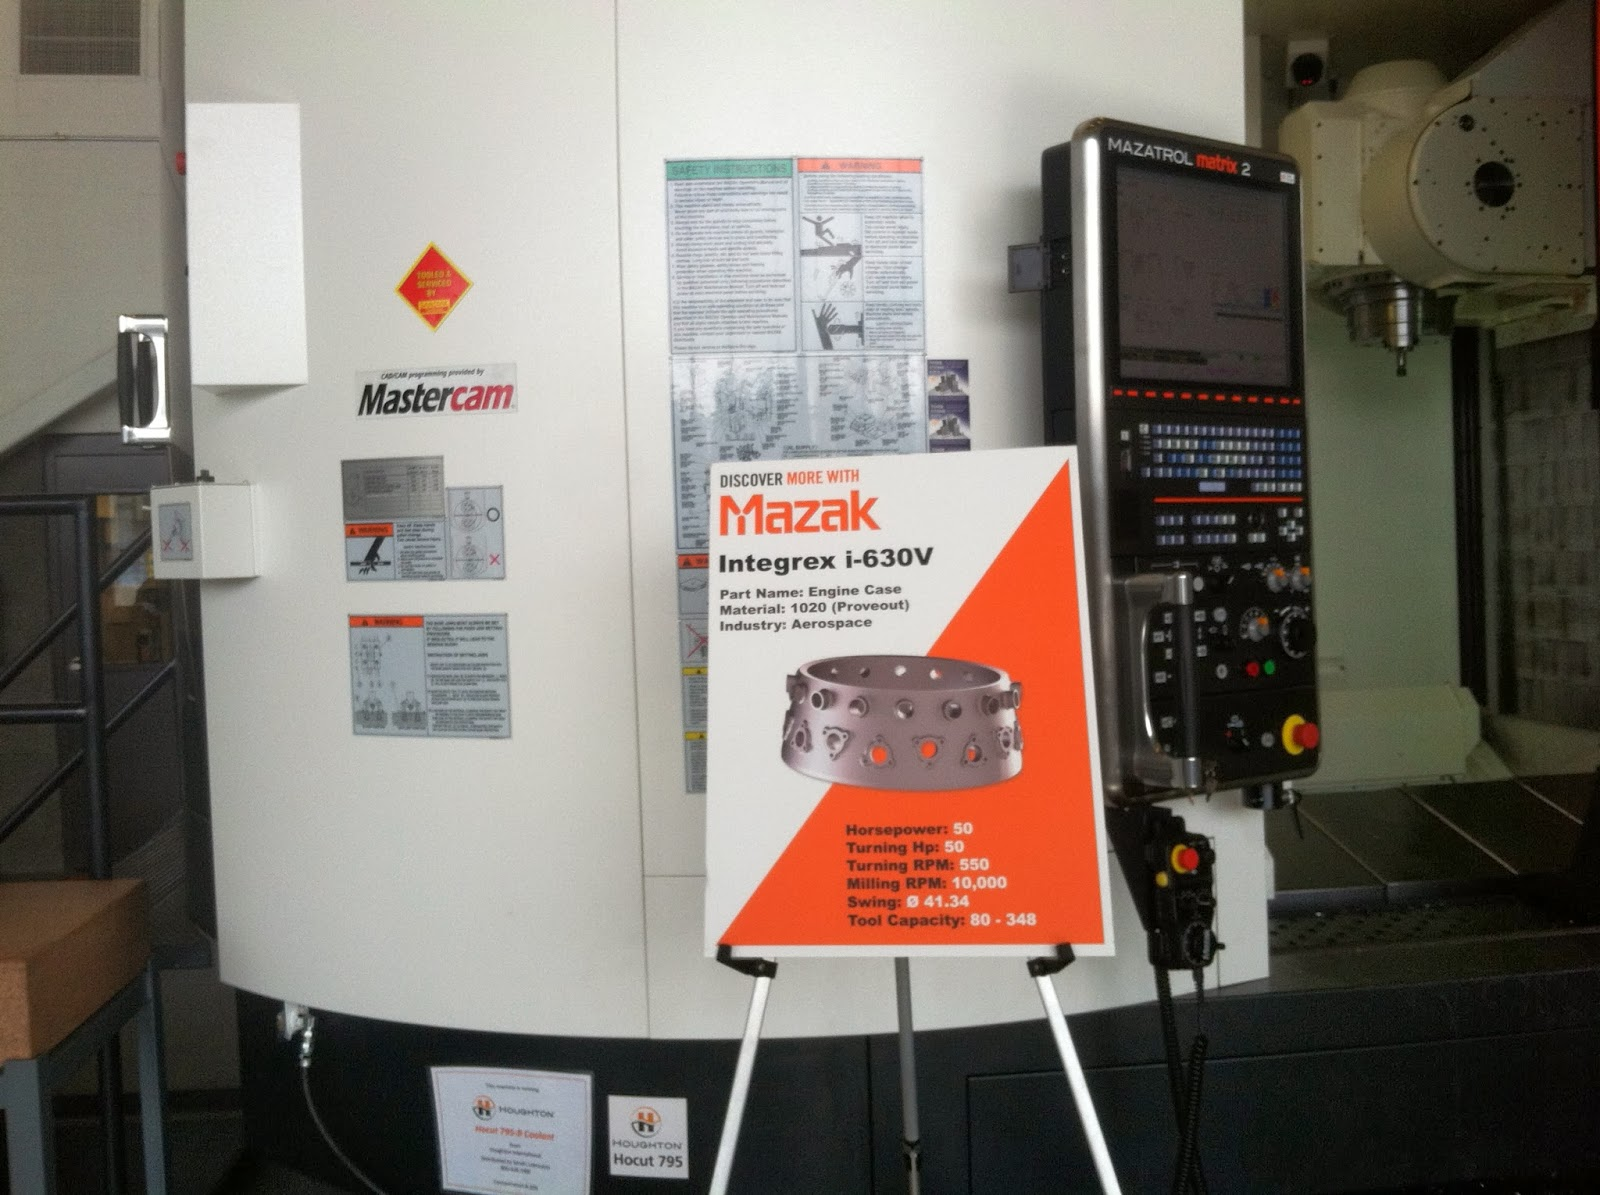 Mastercam's Dynamic Motion Highlighted at Mazak Technology Center